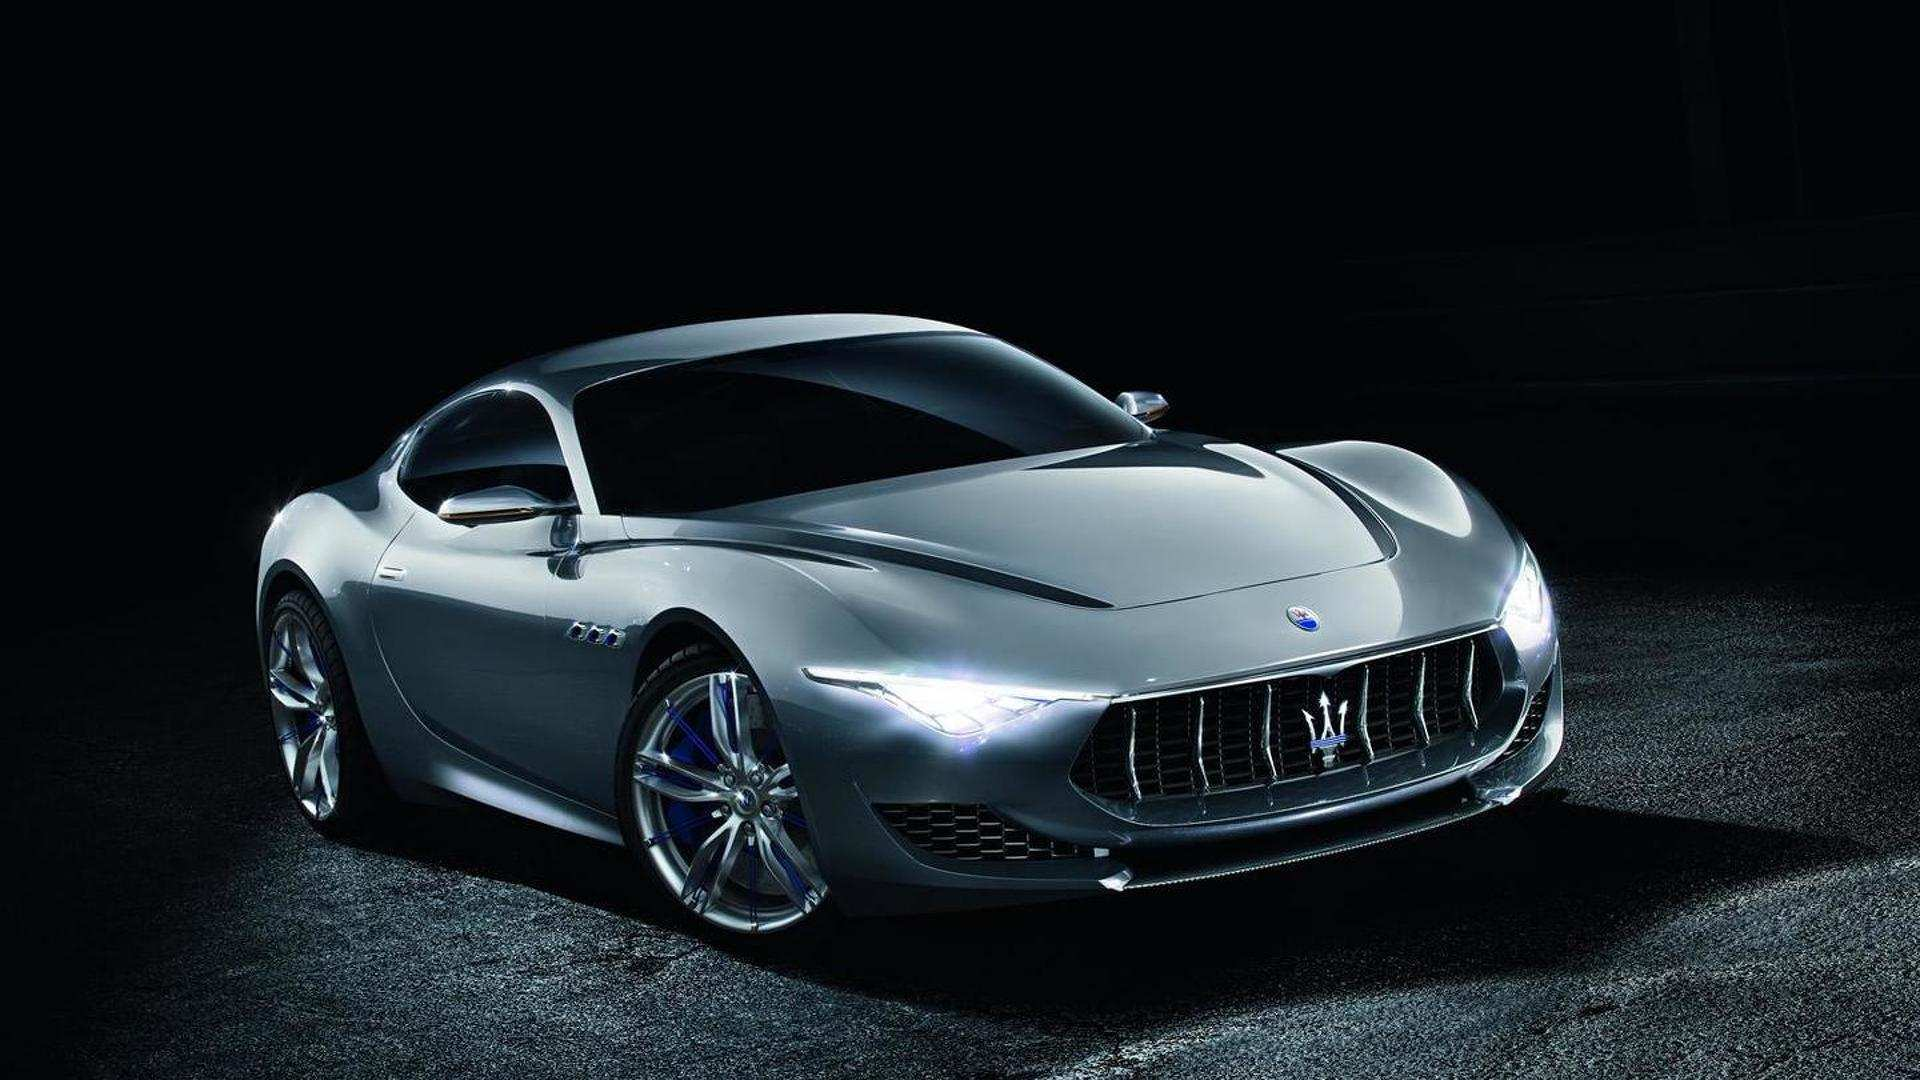 50 All New Maserati Gt 2020 Images by Maserati Gt 2020